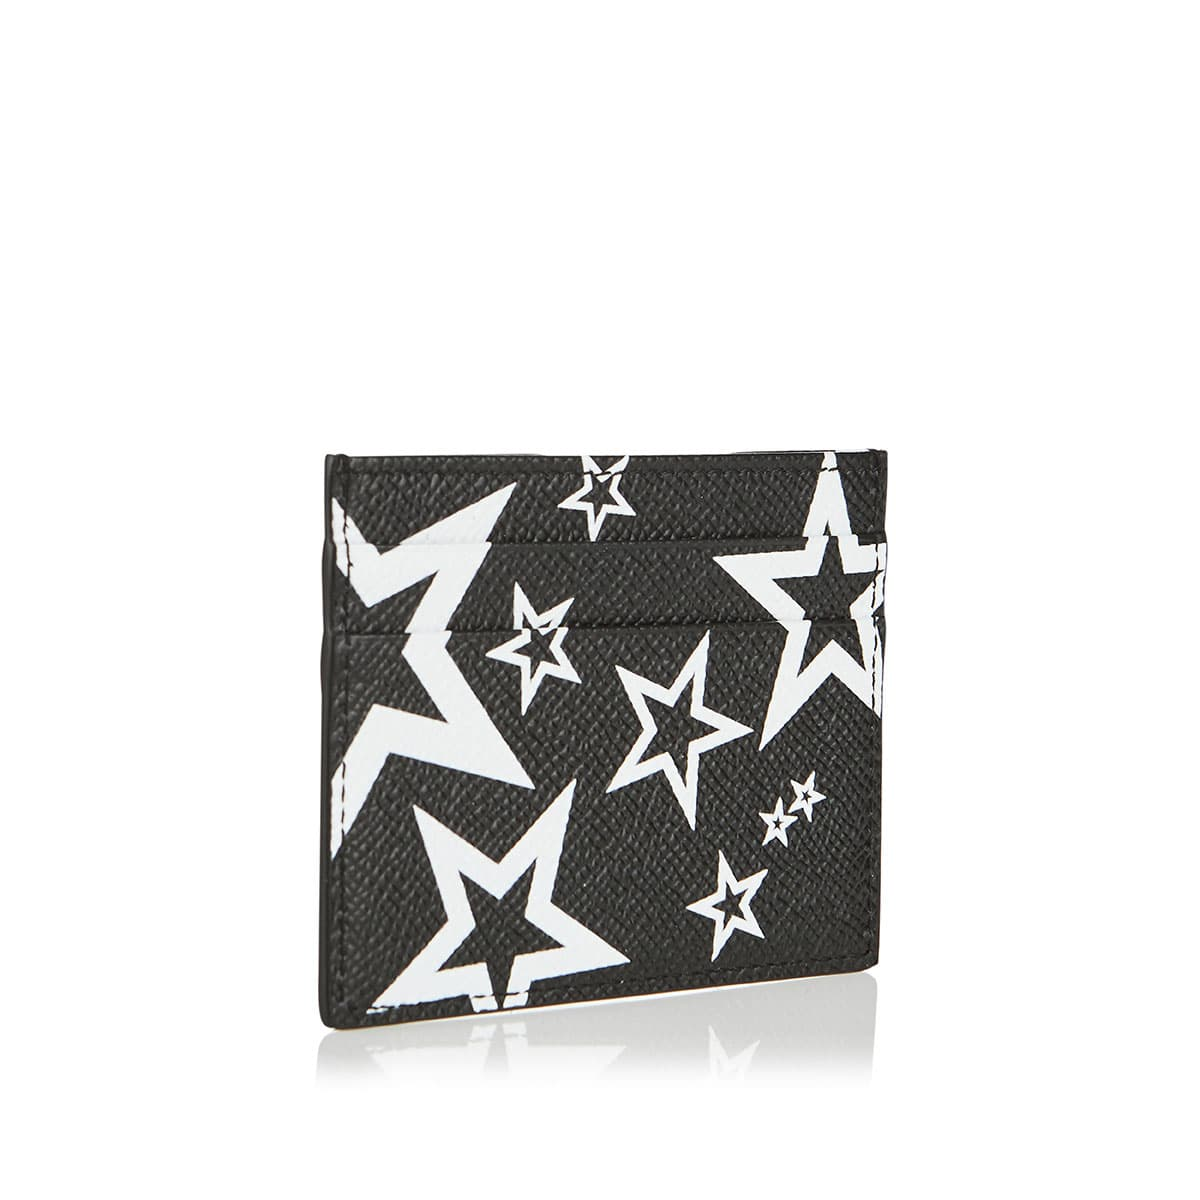 Millennials Star printed card case